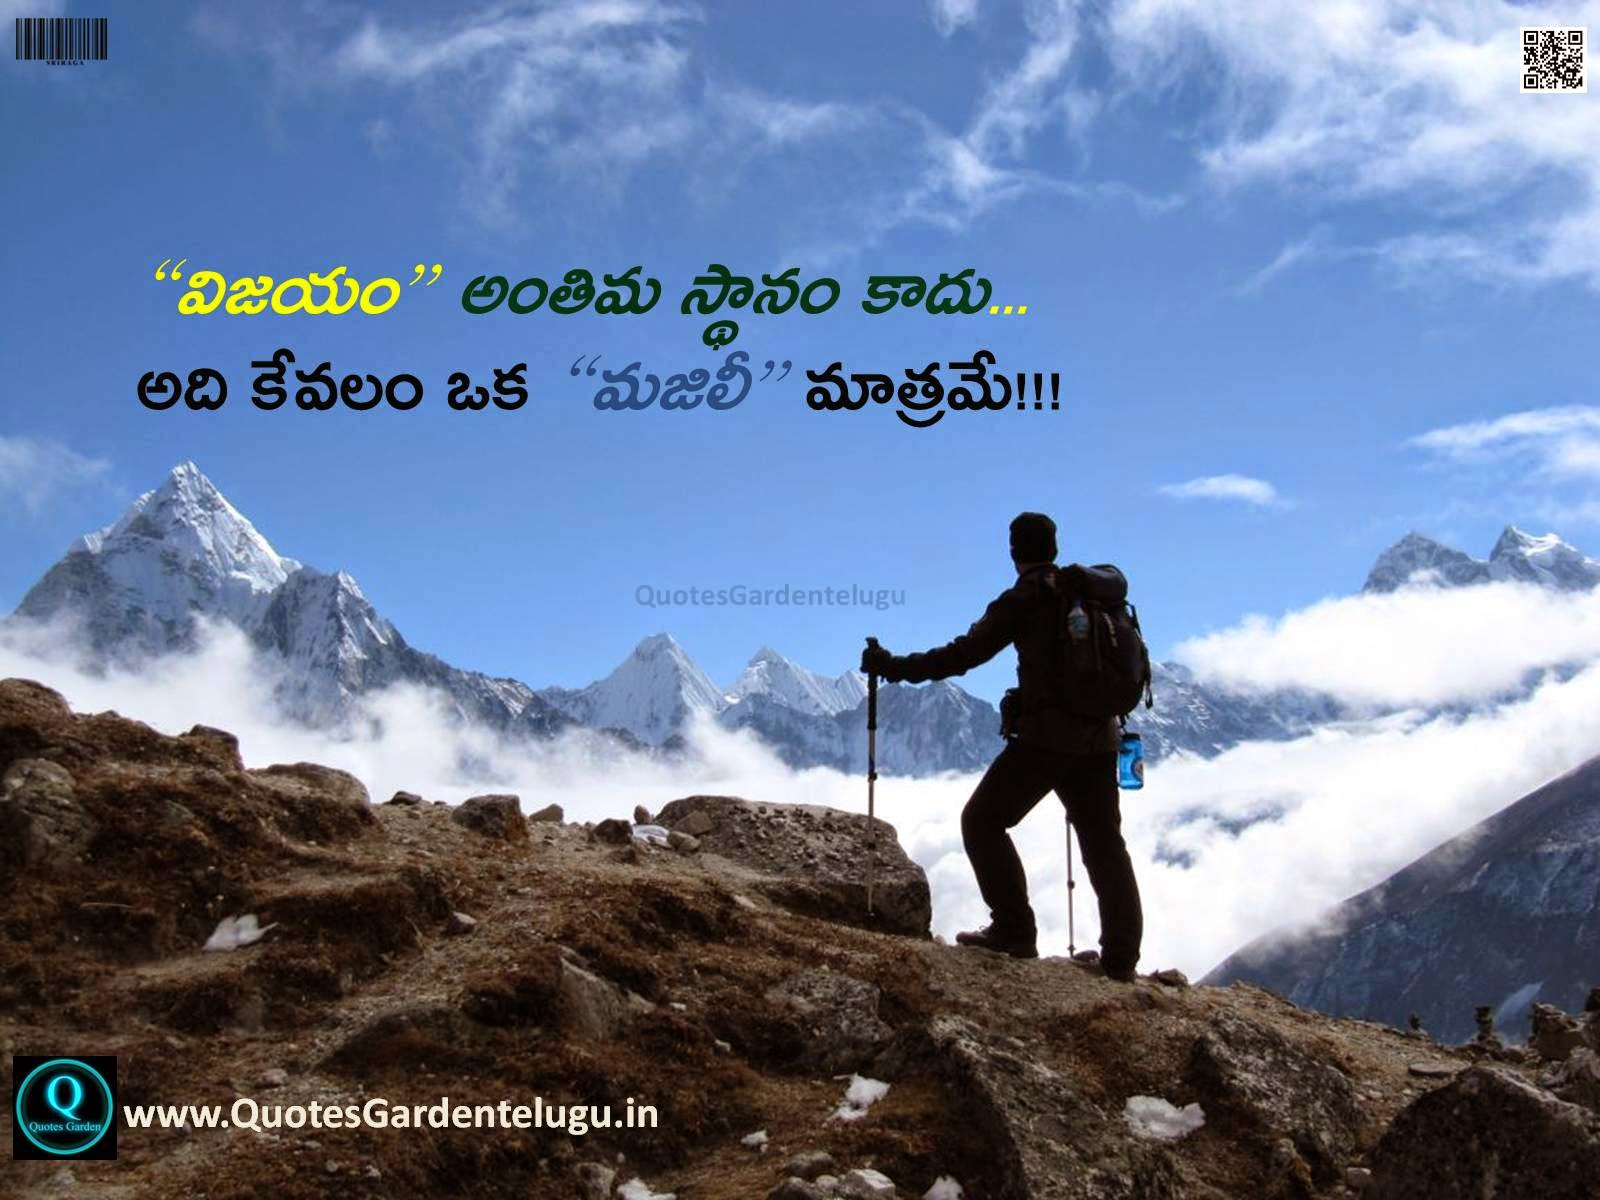 Top Telugu Victory Quotes with Beautiful images 2004151 wallpapers